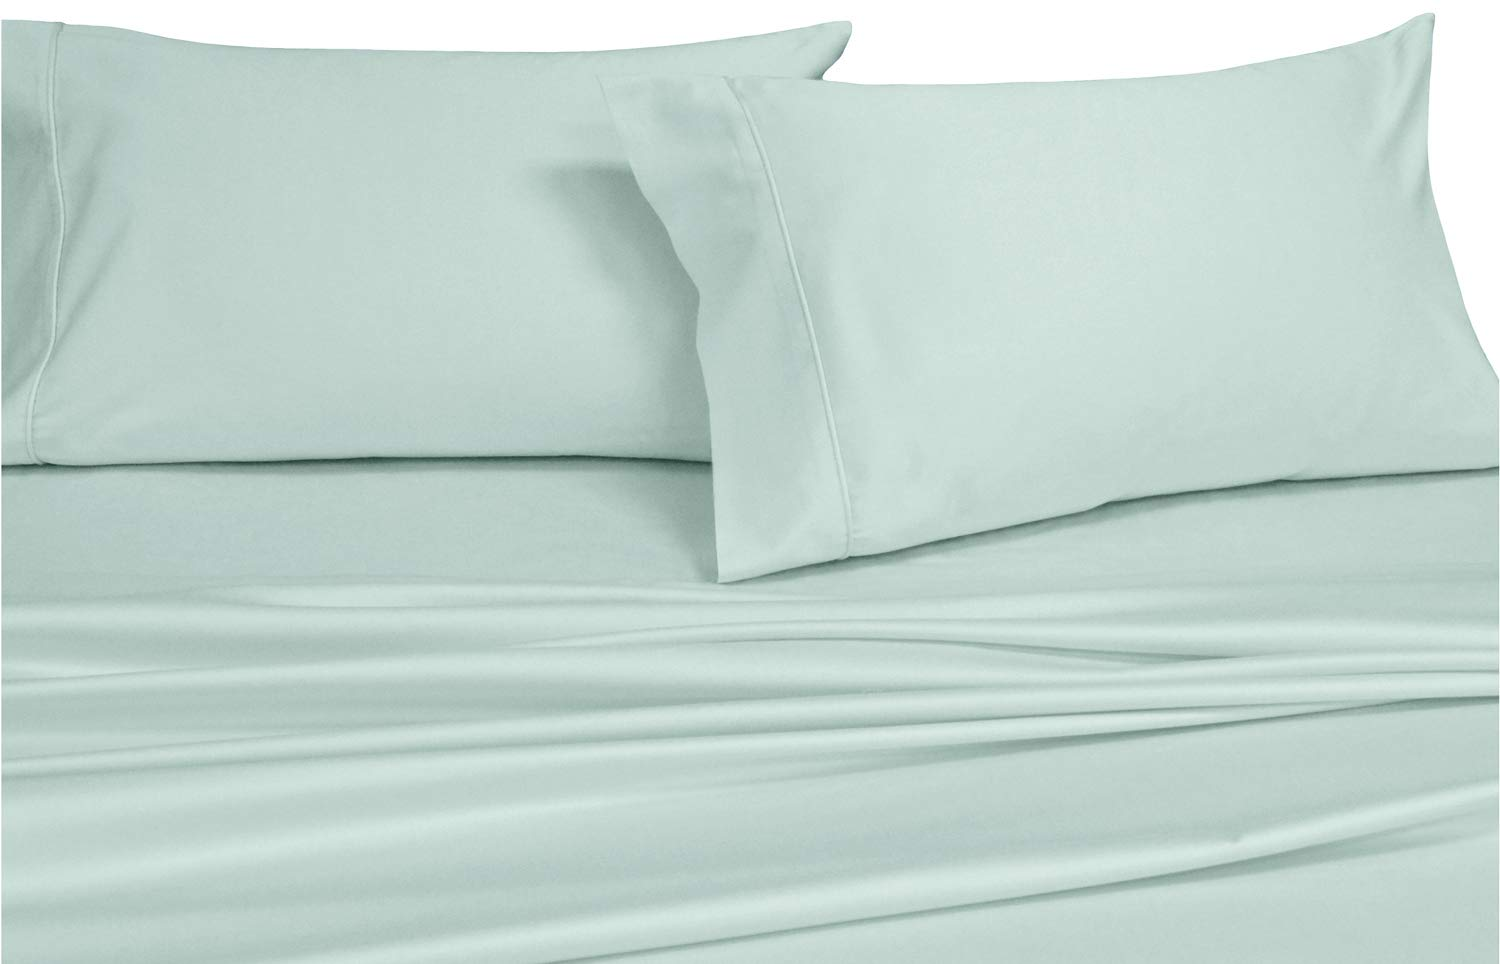 Royal Hotel Solid Sea 600-Thread-Count Super-Deep 4pc Queen Bed Sheet Set 100% Cotton, Sateen Solid, Extra Deep Pocket